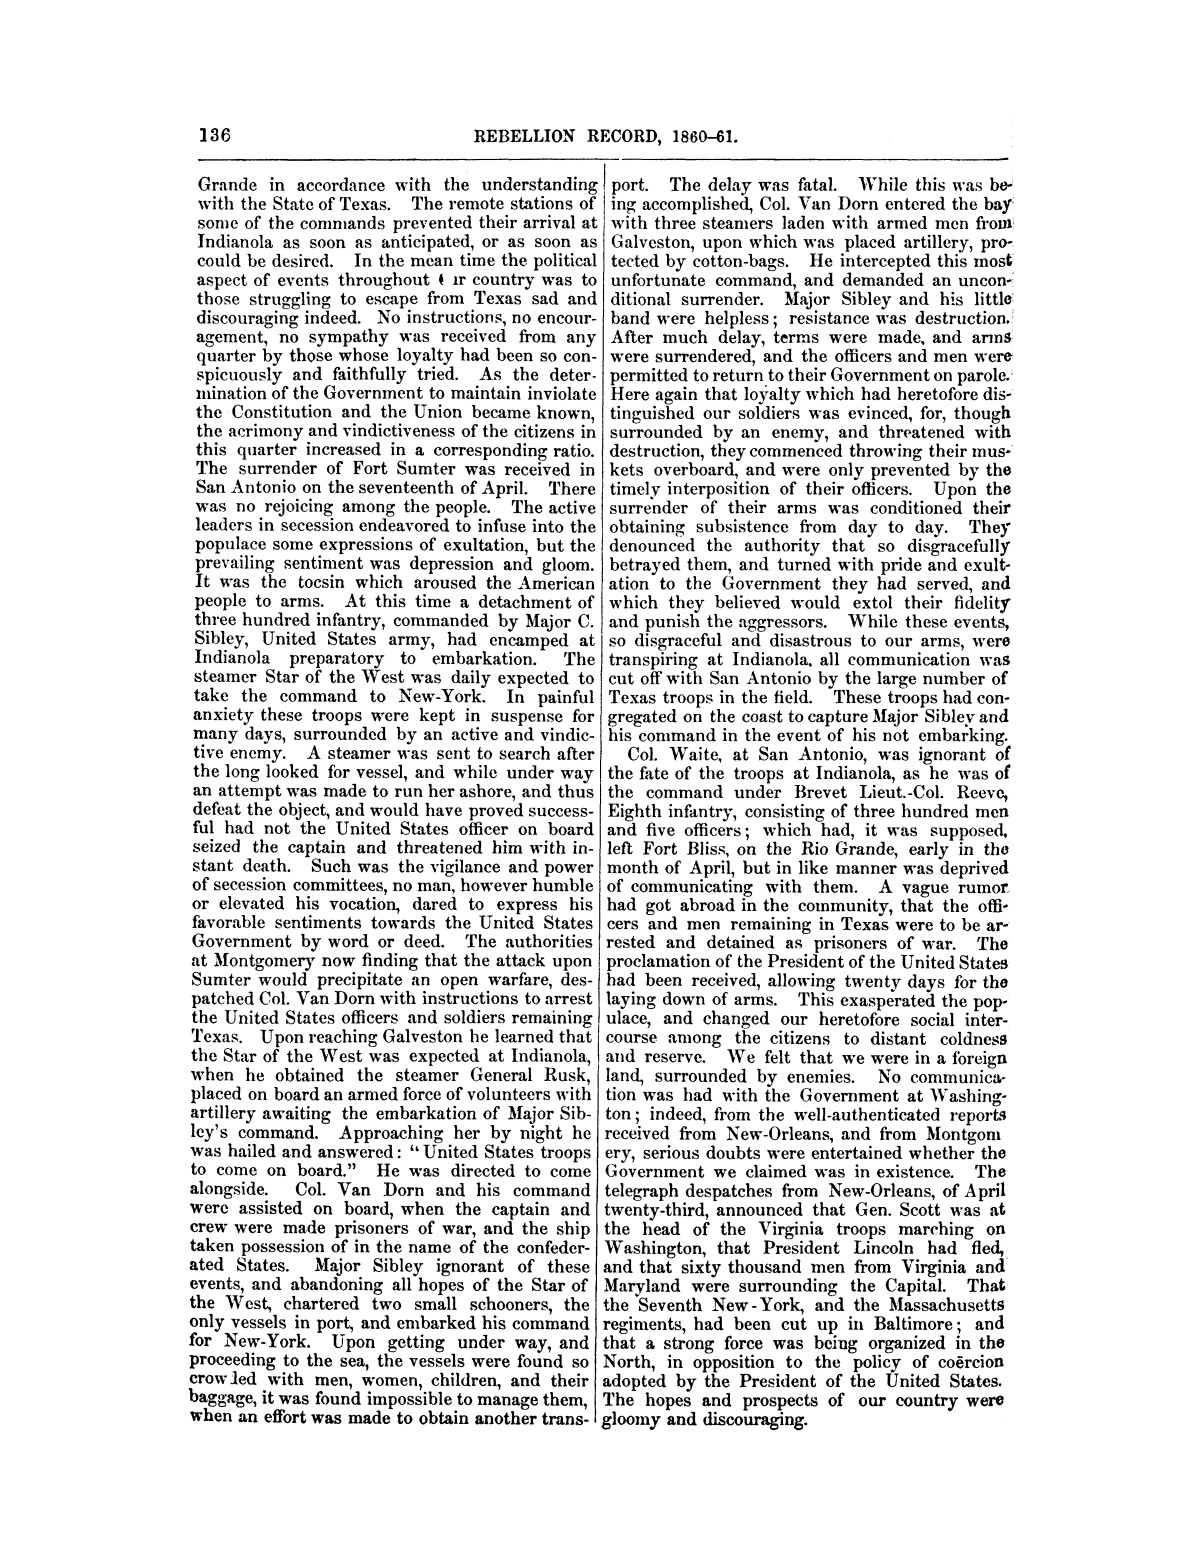 The treachery in Texas, the secession of Texas, and the arrest of the United States officers and soldiers serving in Texas. Read before the New-York Historical Society, June 25, 1861. By Major J. T. Sprague, U. S. A.                                                                                                      [Sequence #]: 30 of 36